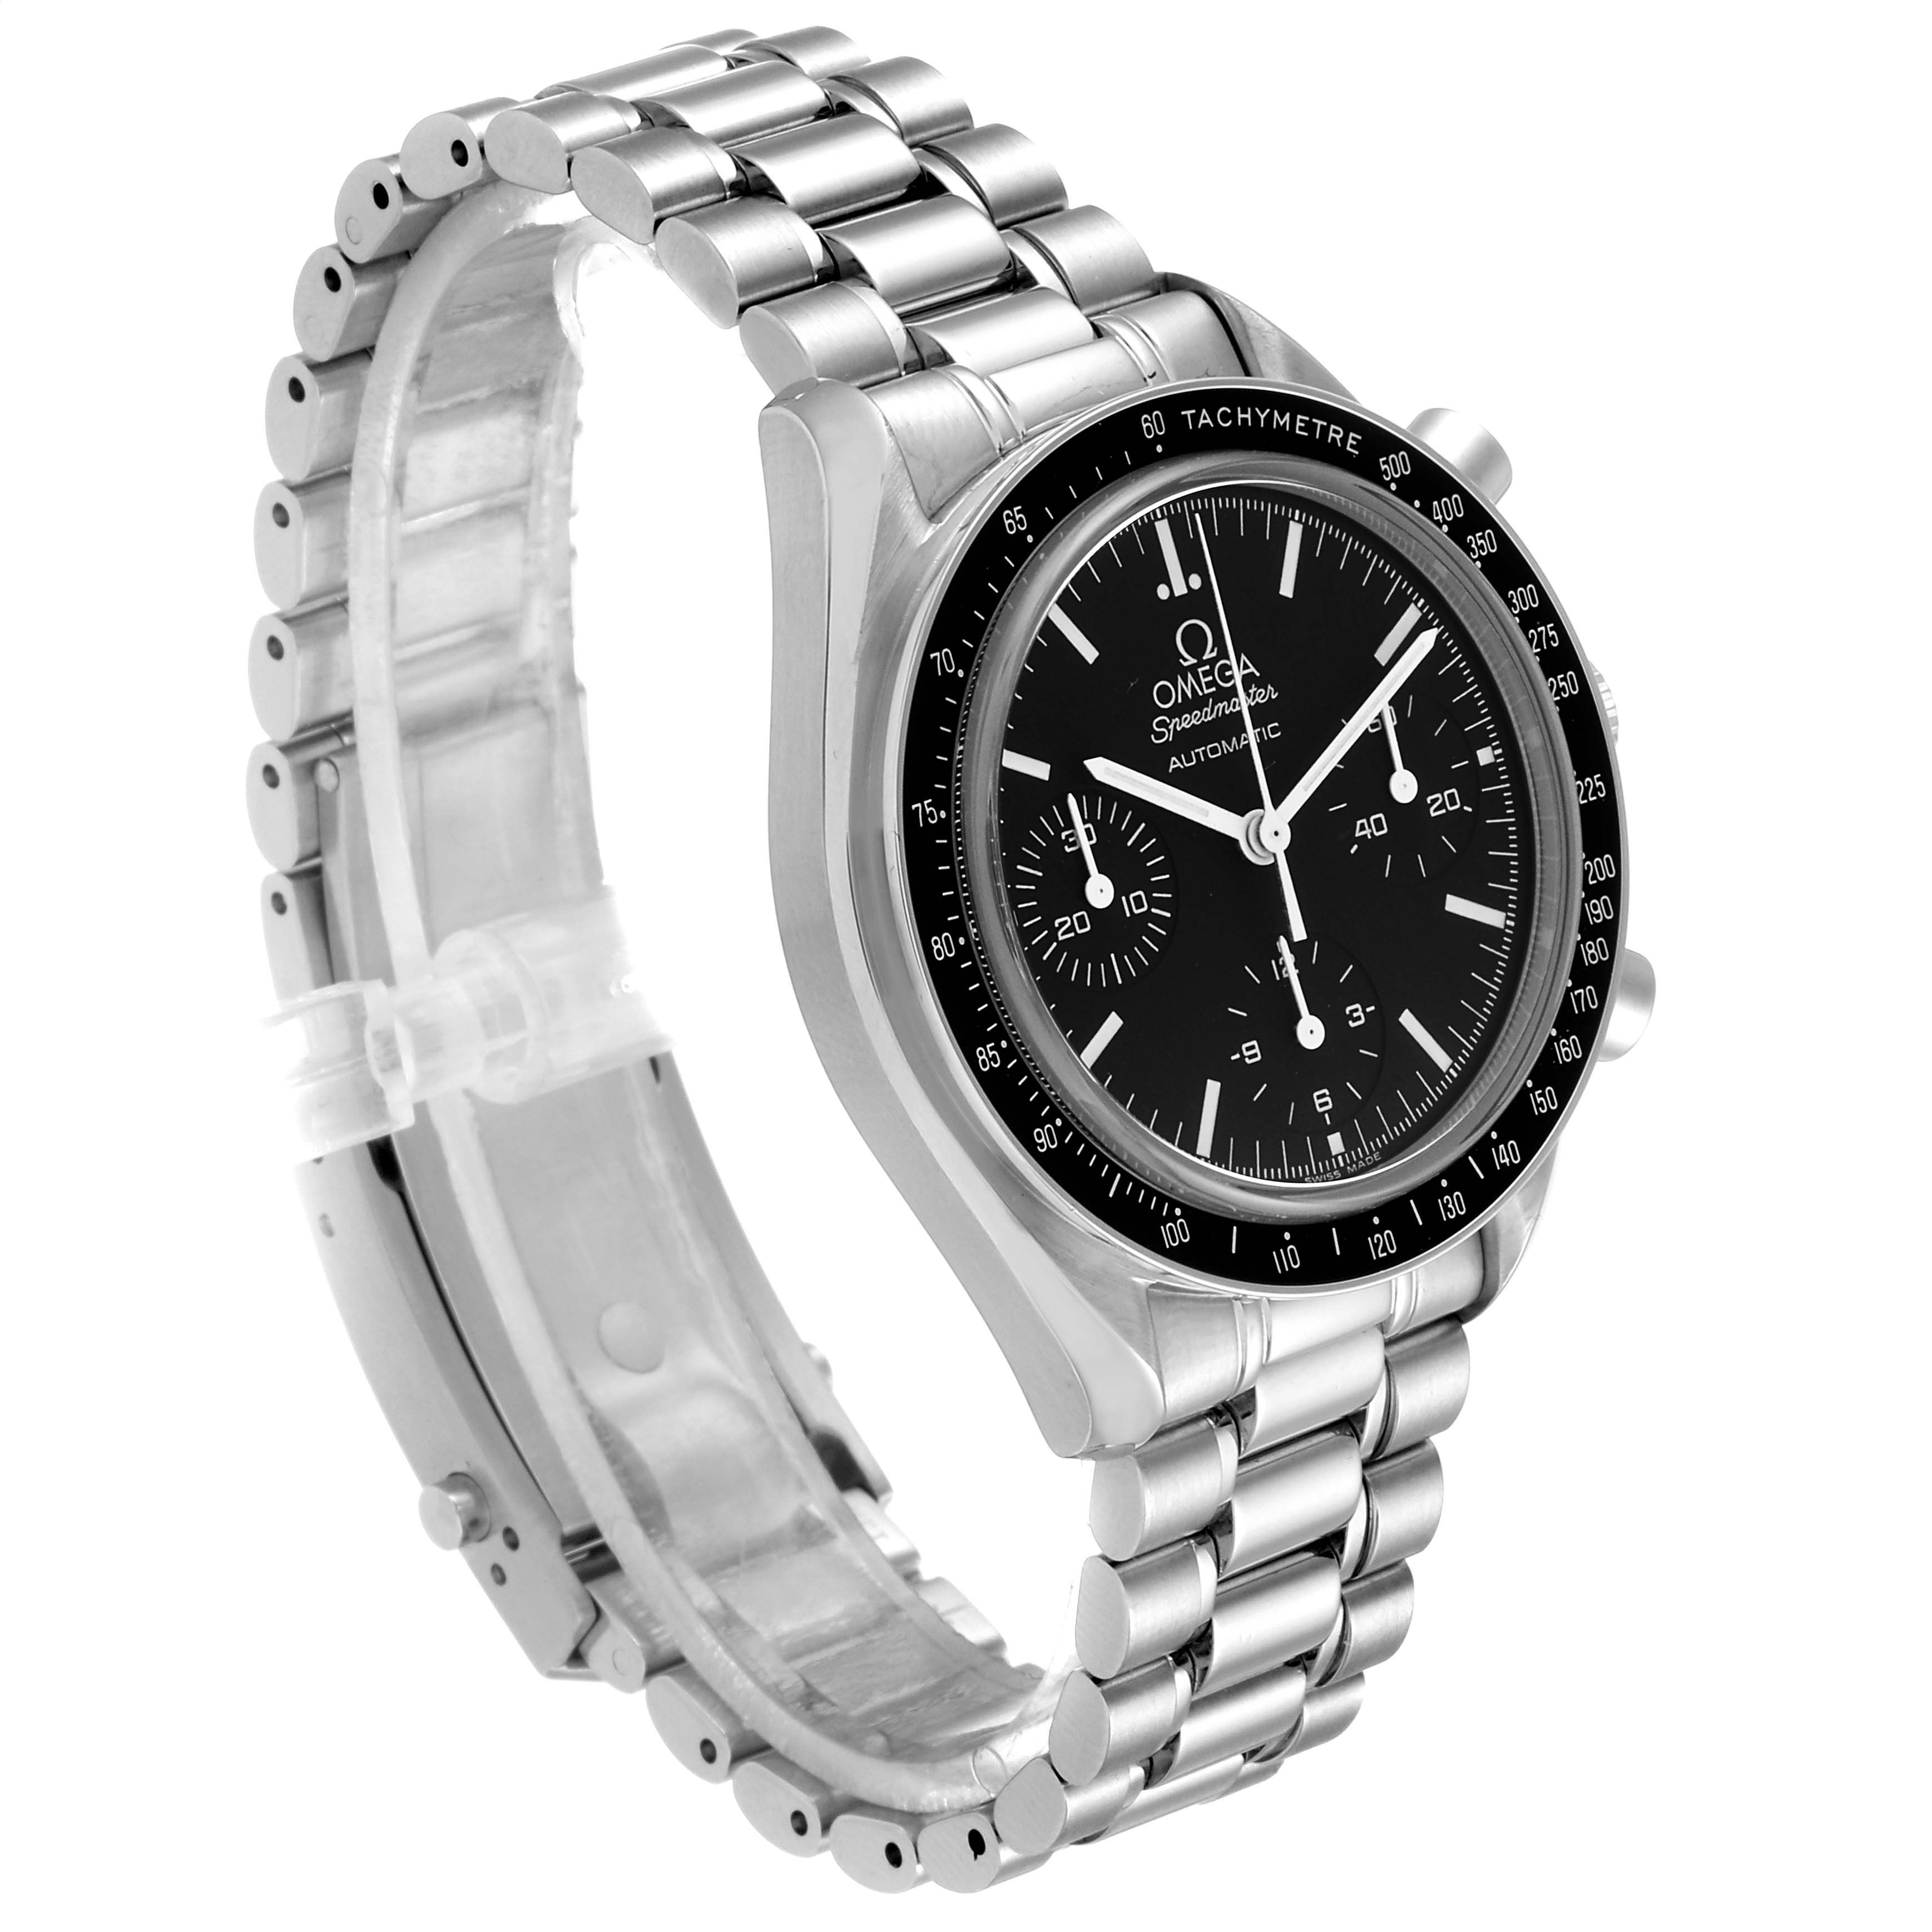 Omega Speedmaster Reduced Automatic Chronograph Steel Watch 3539.50.00 SwissWatchExpo